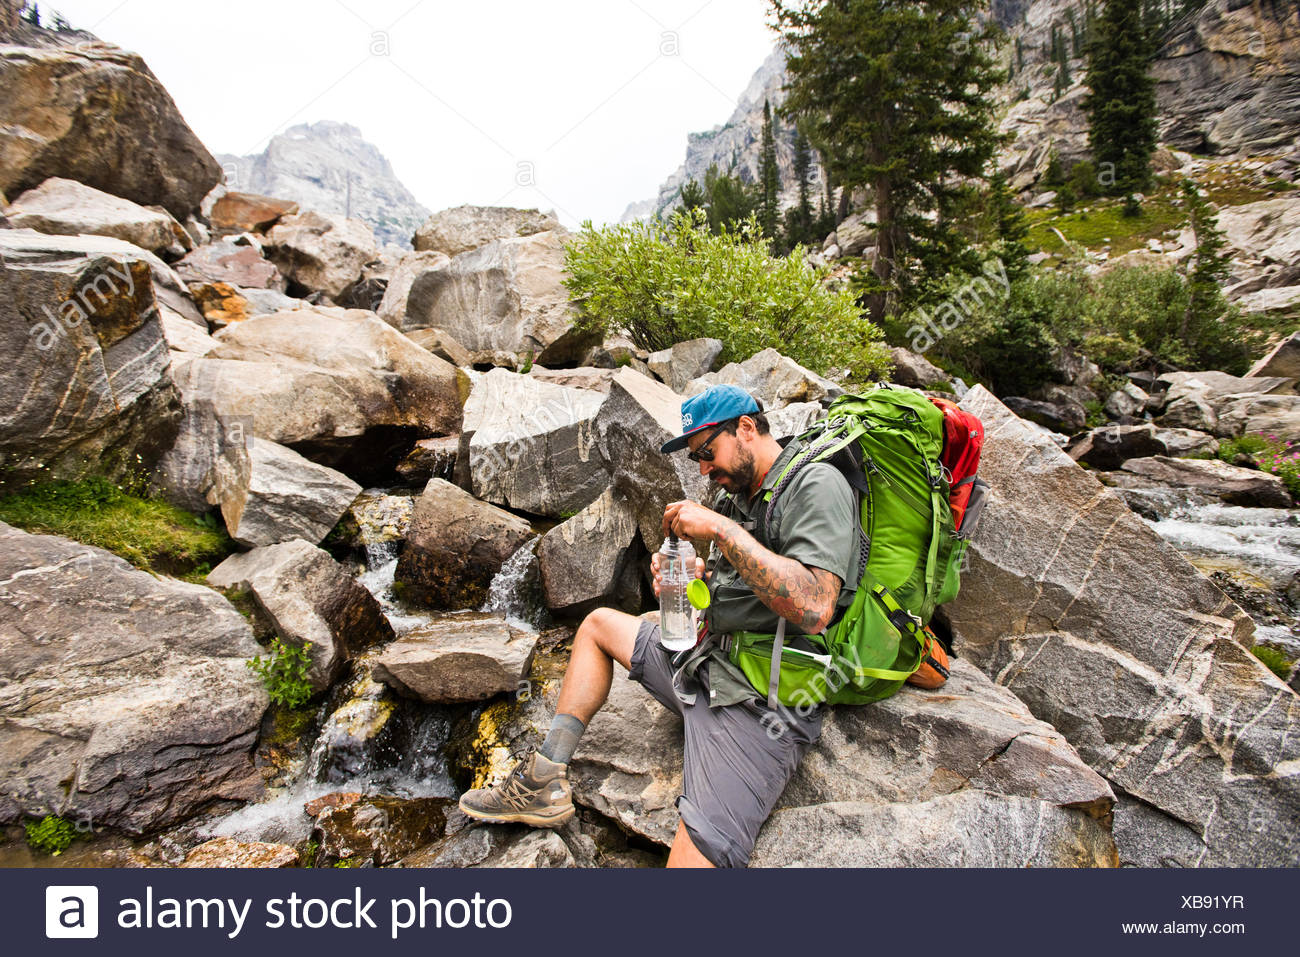 A hiker stops to fill his water bottle. - Stock Image